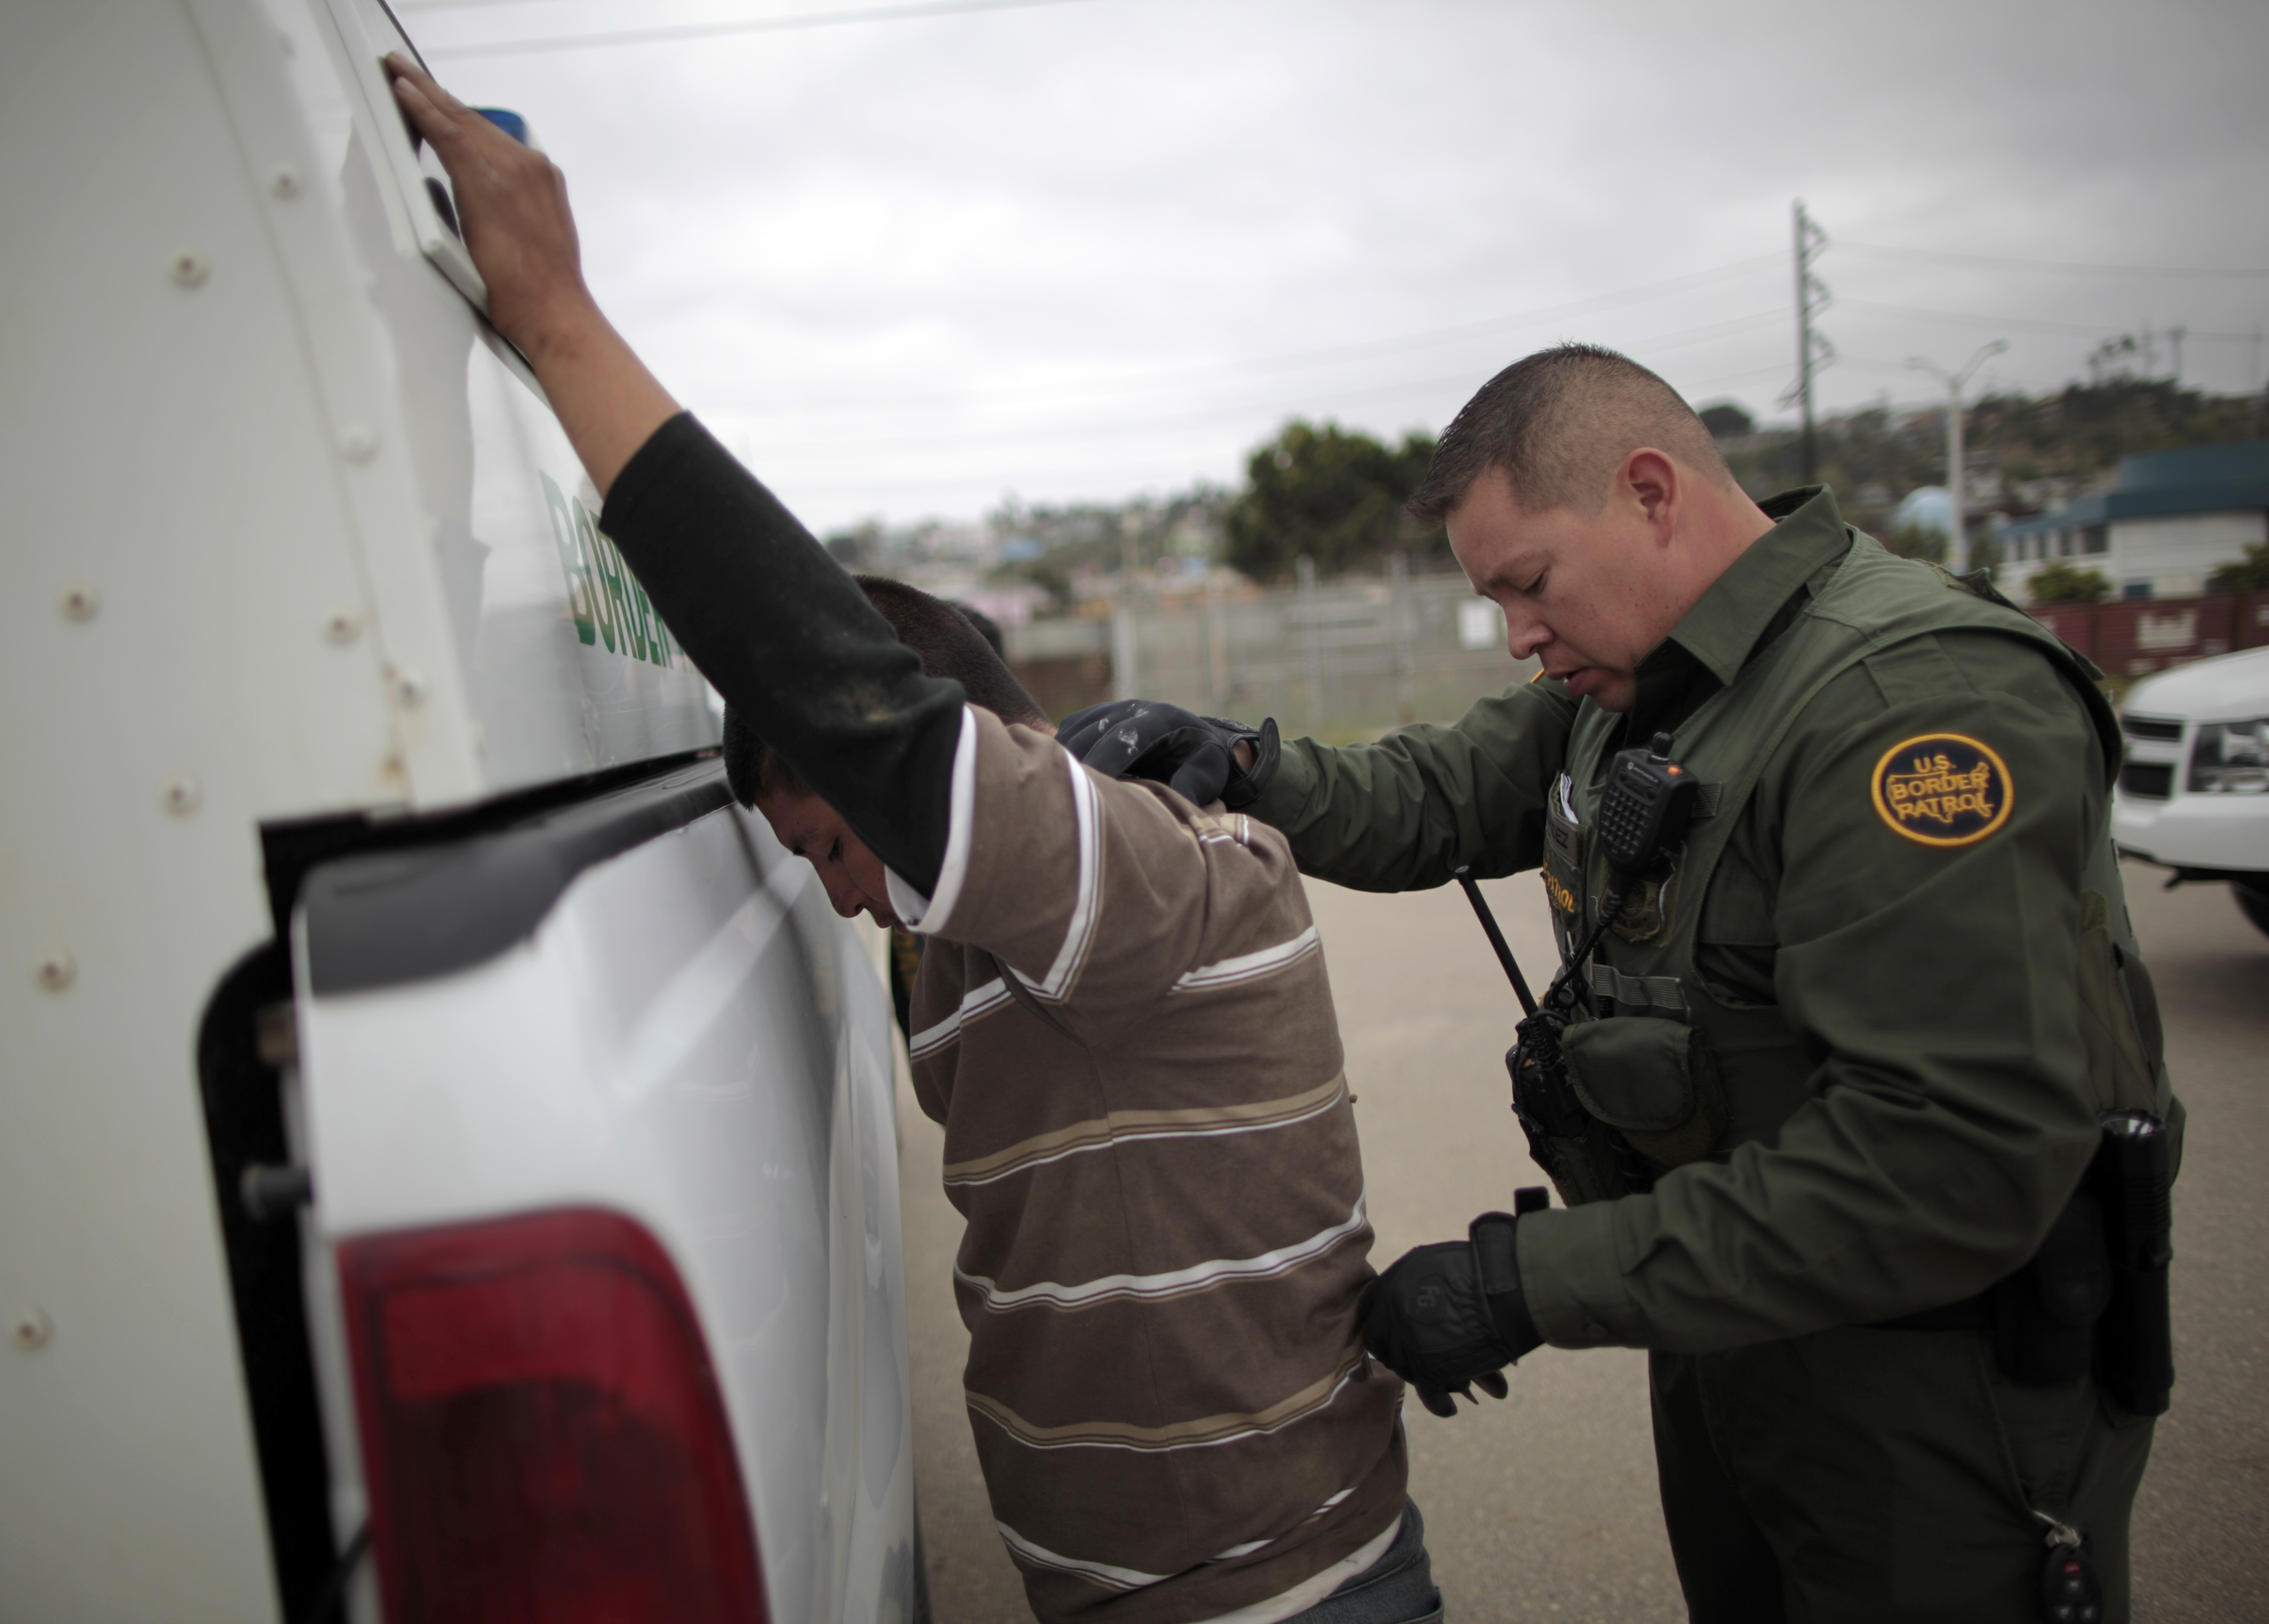 A United States border patrol agent catches an illegal immigrant crossing from Mexico to the U.S. in San Ysidro